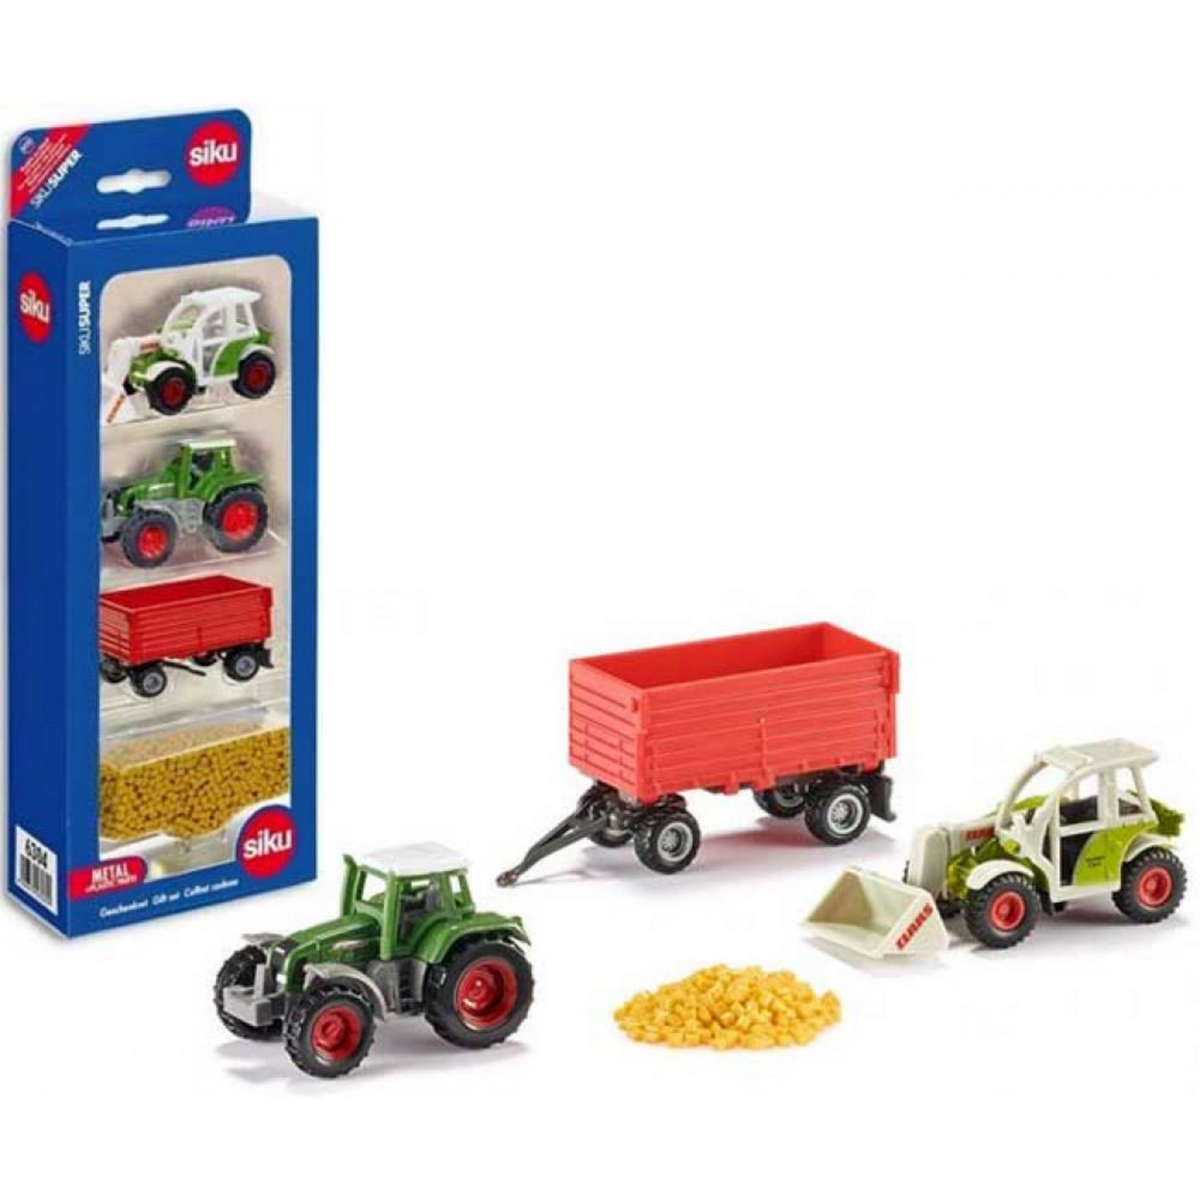 Siku Mini  Agriculture Gift Set 6304